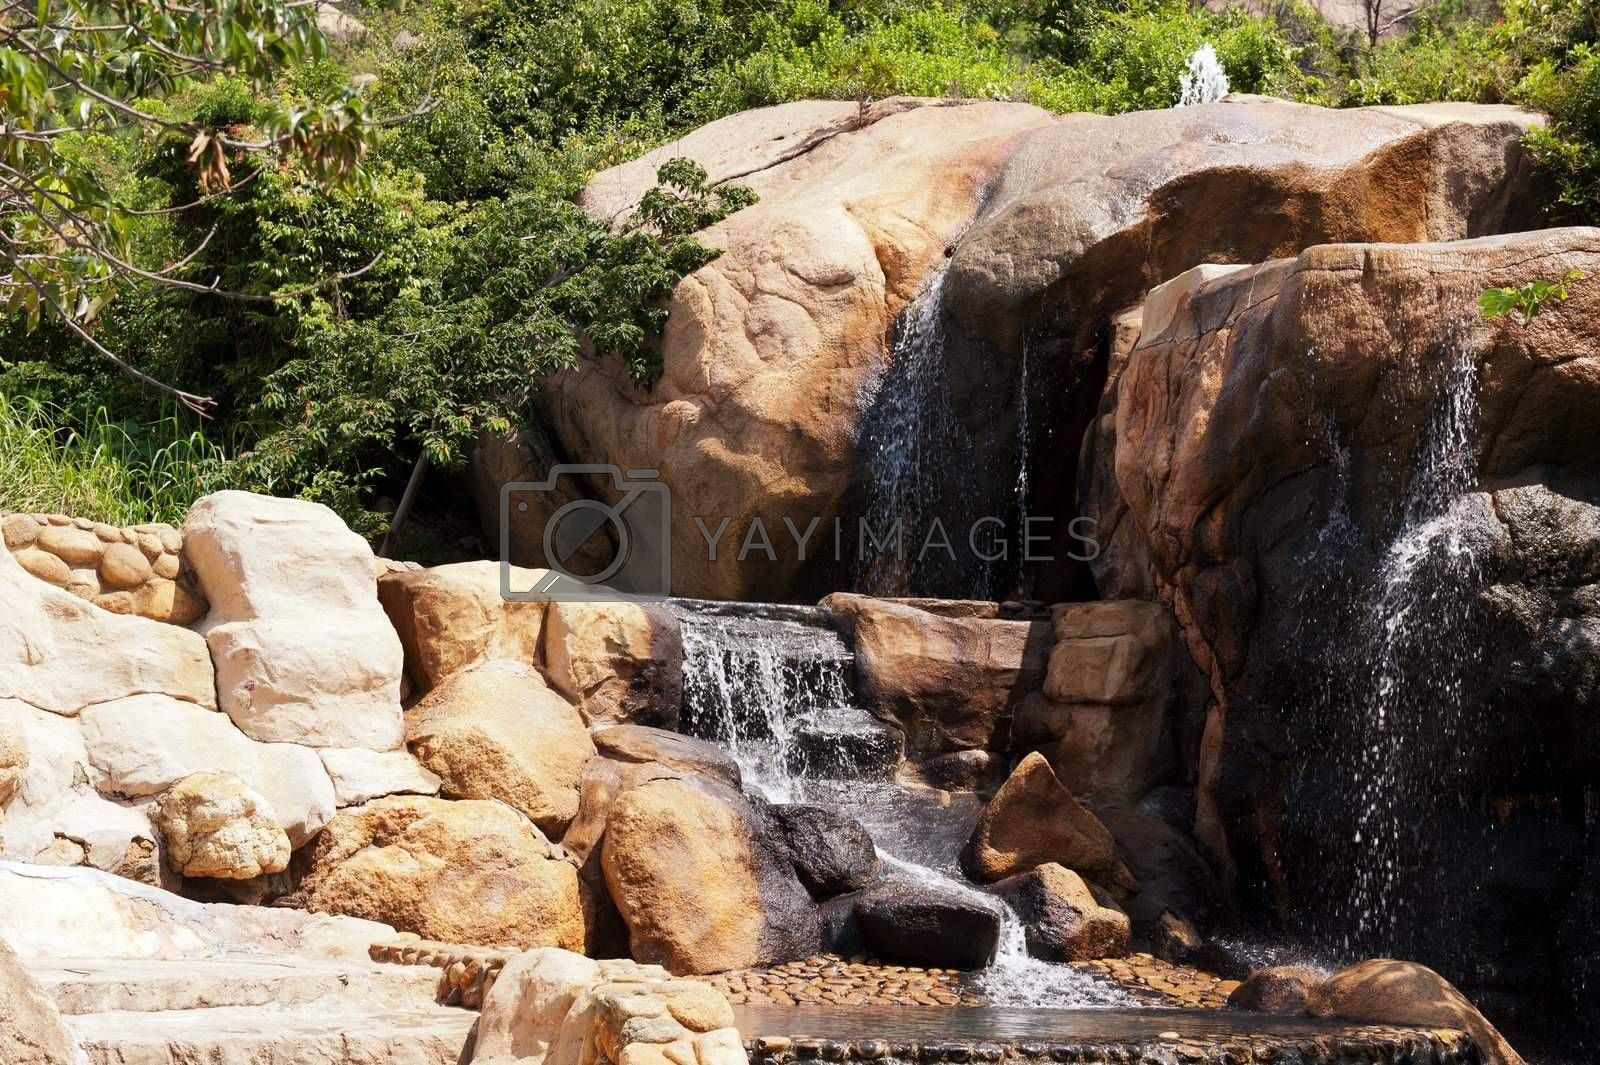 Waterfall in the garden with stones and trees